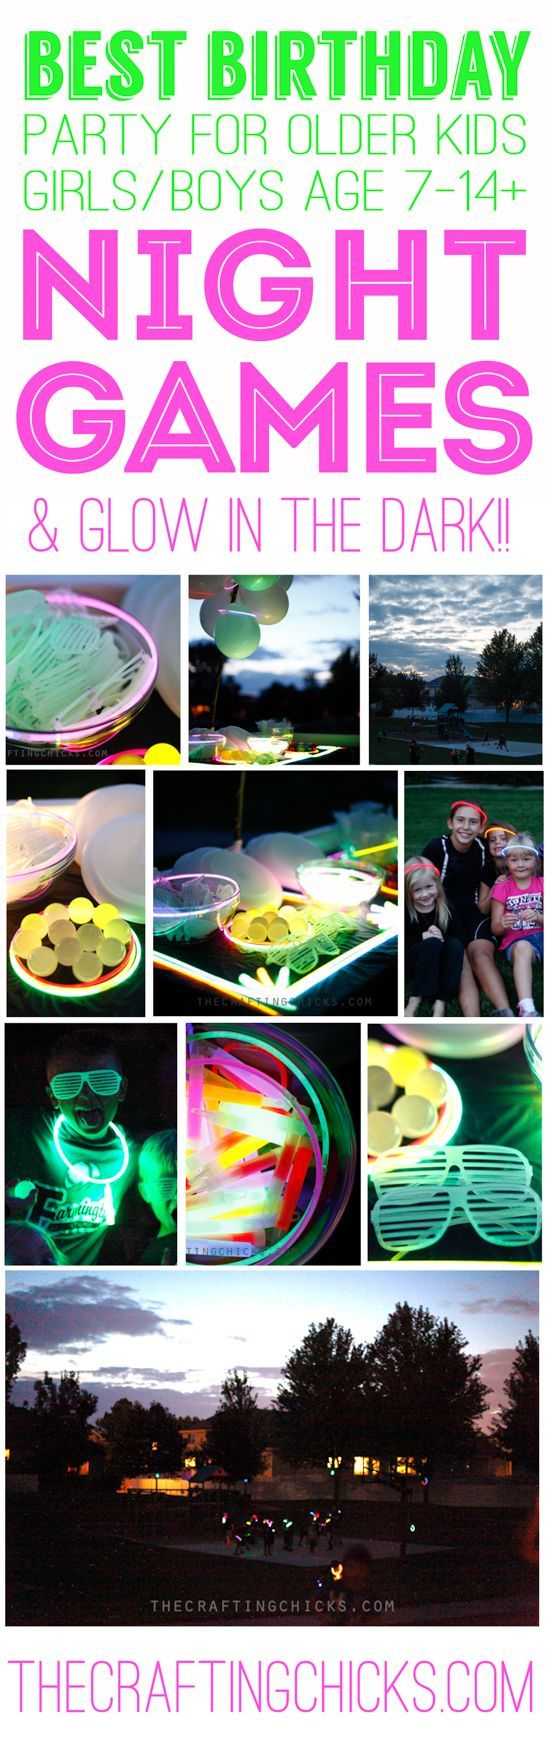 Best Birthday Party For Kids Ages 7 14 Girl Boy And 12 Tips To Make This Amazing